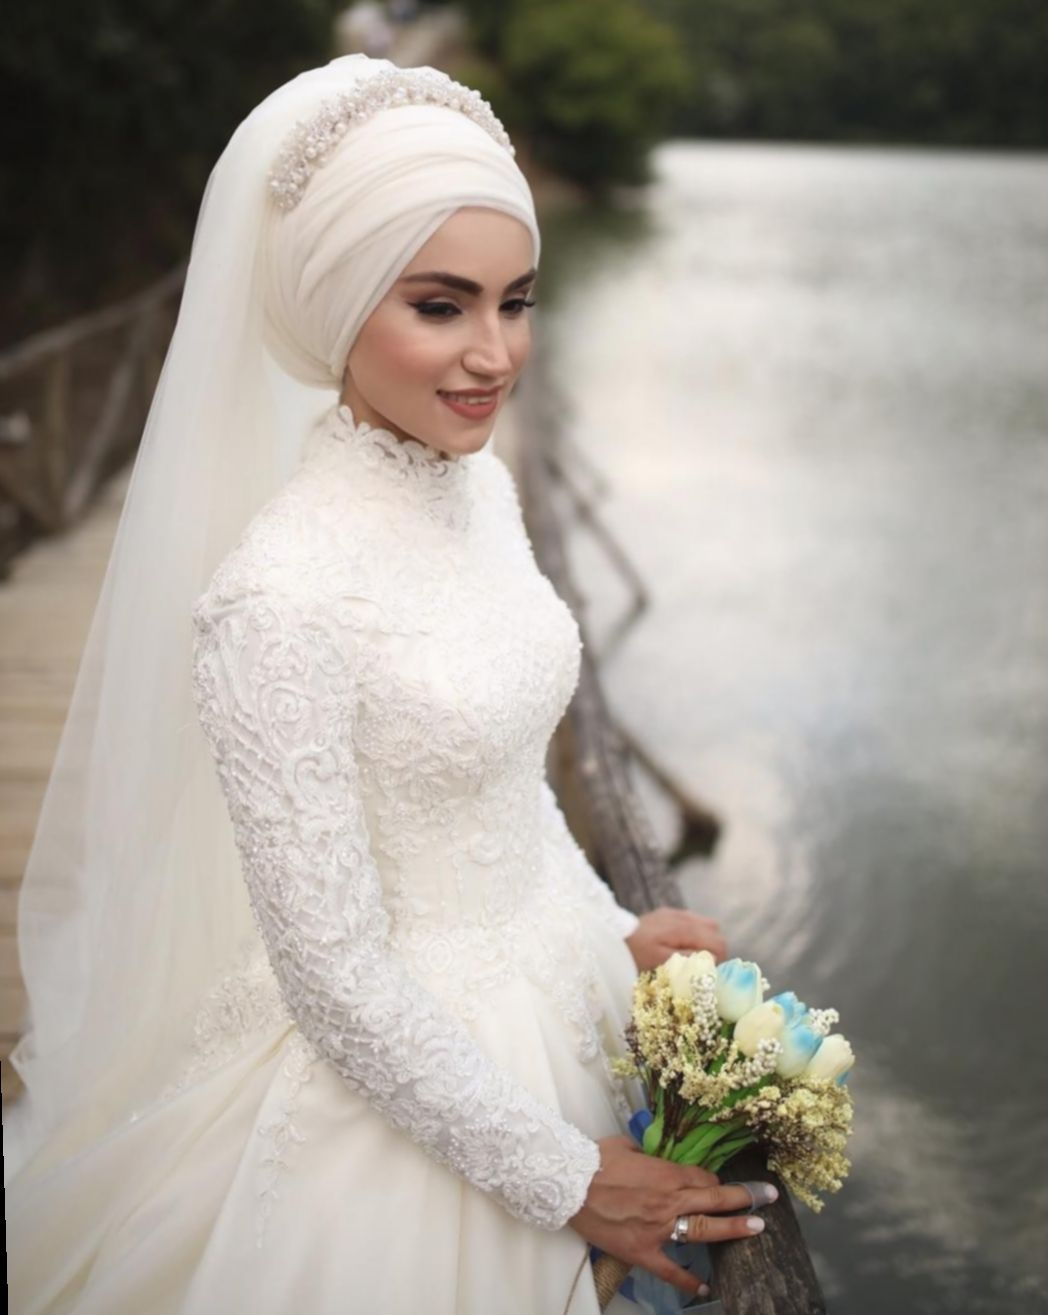 Dress Wedding Simple Indian Hairstyle Outfits Glam Wedding Dresses Muslim Wedding Dresses Gothic Wedding Dress [ 1315 x 1048 Pixel ]